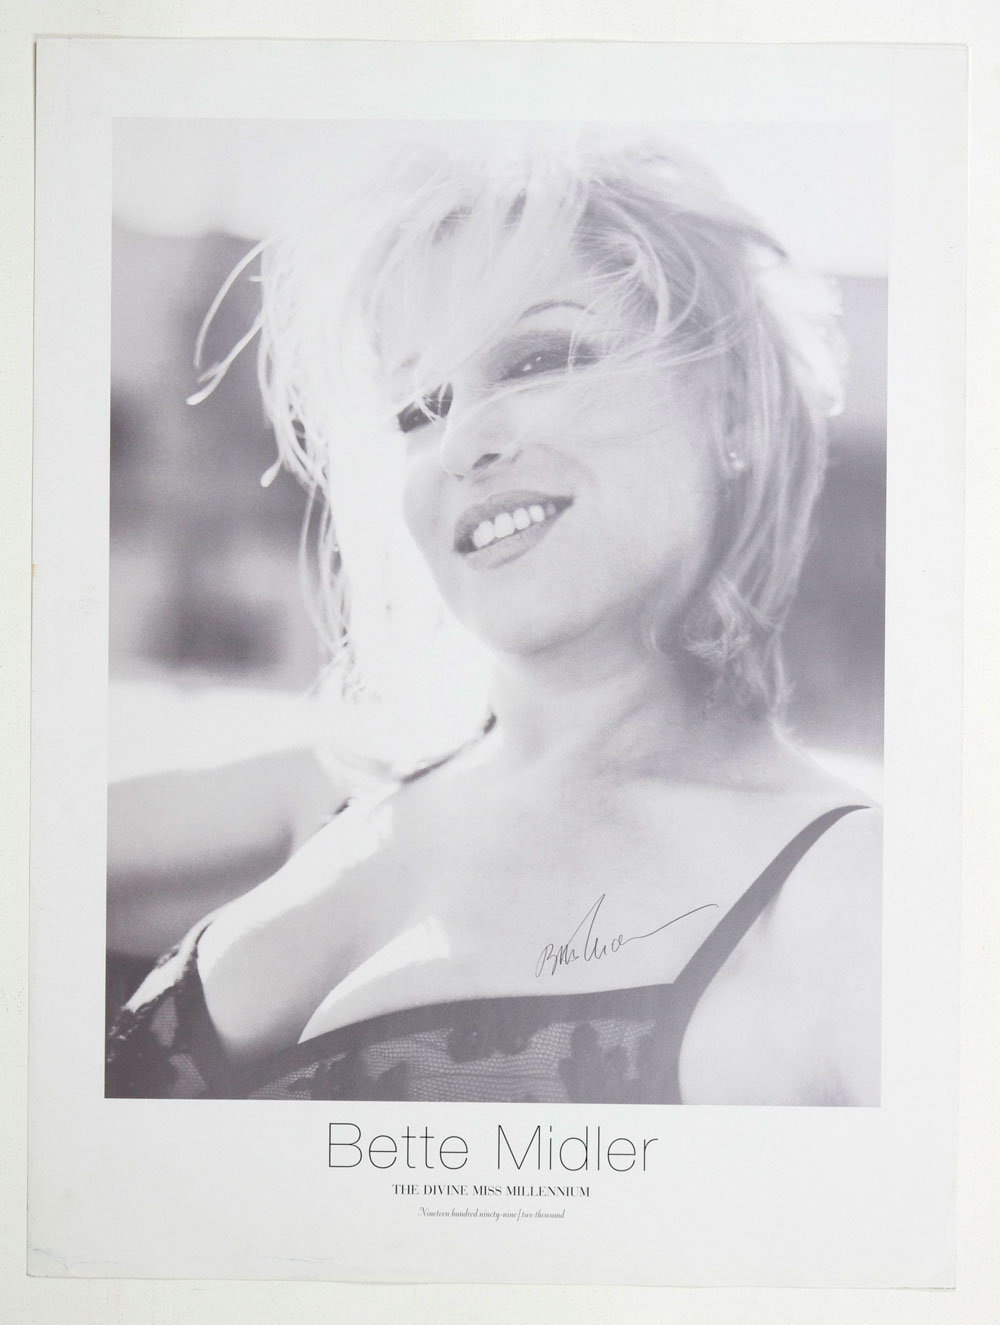 Bette Midler Poster 1999 The Devine Miss Millenium tour 18 x 24